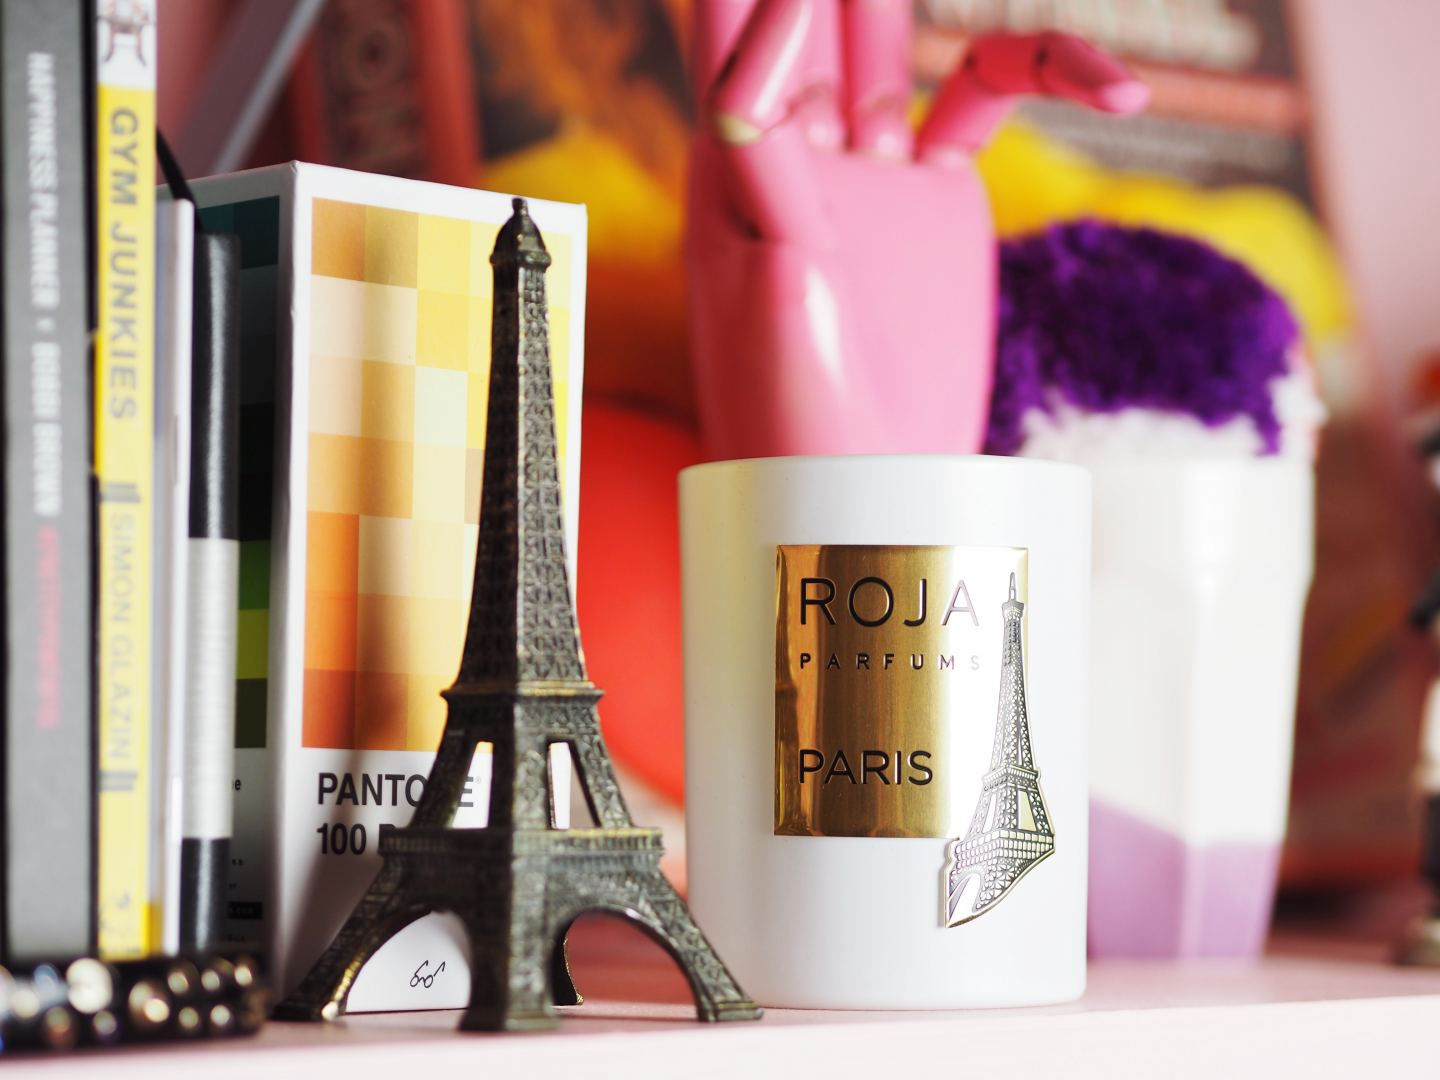 dove Roja 'Paris' candle